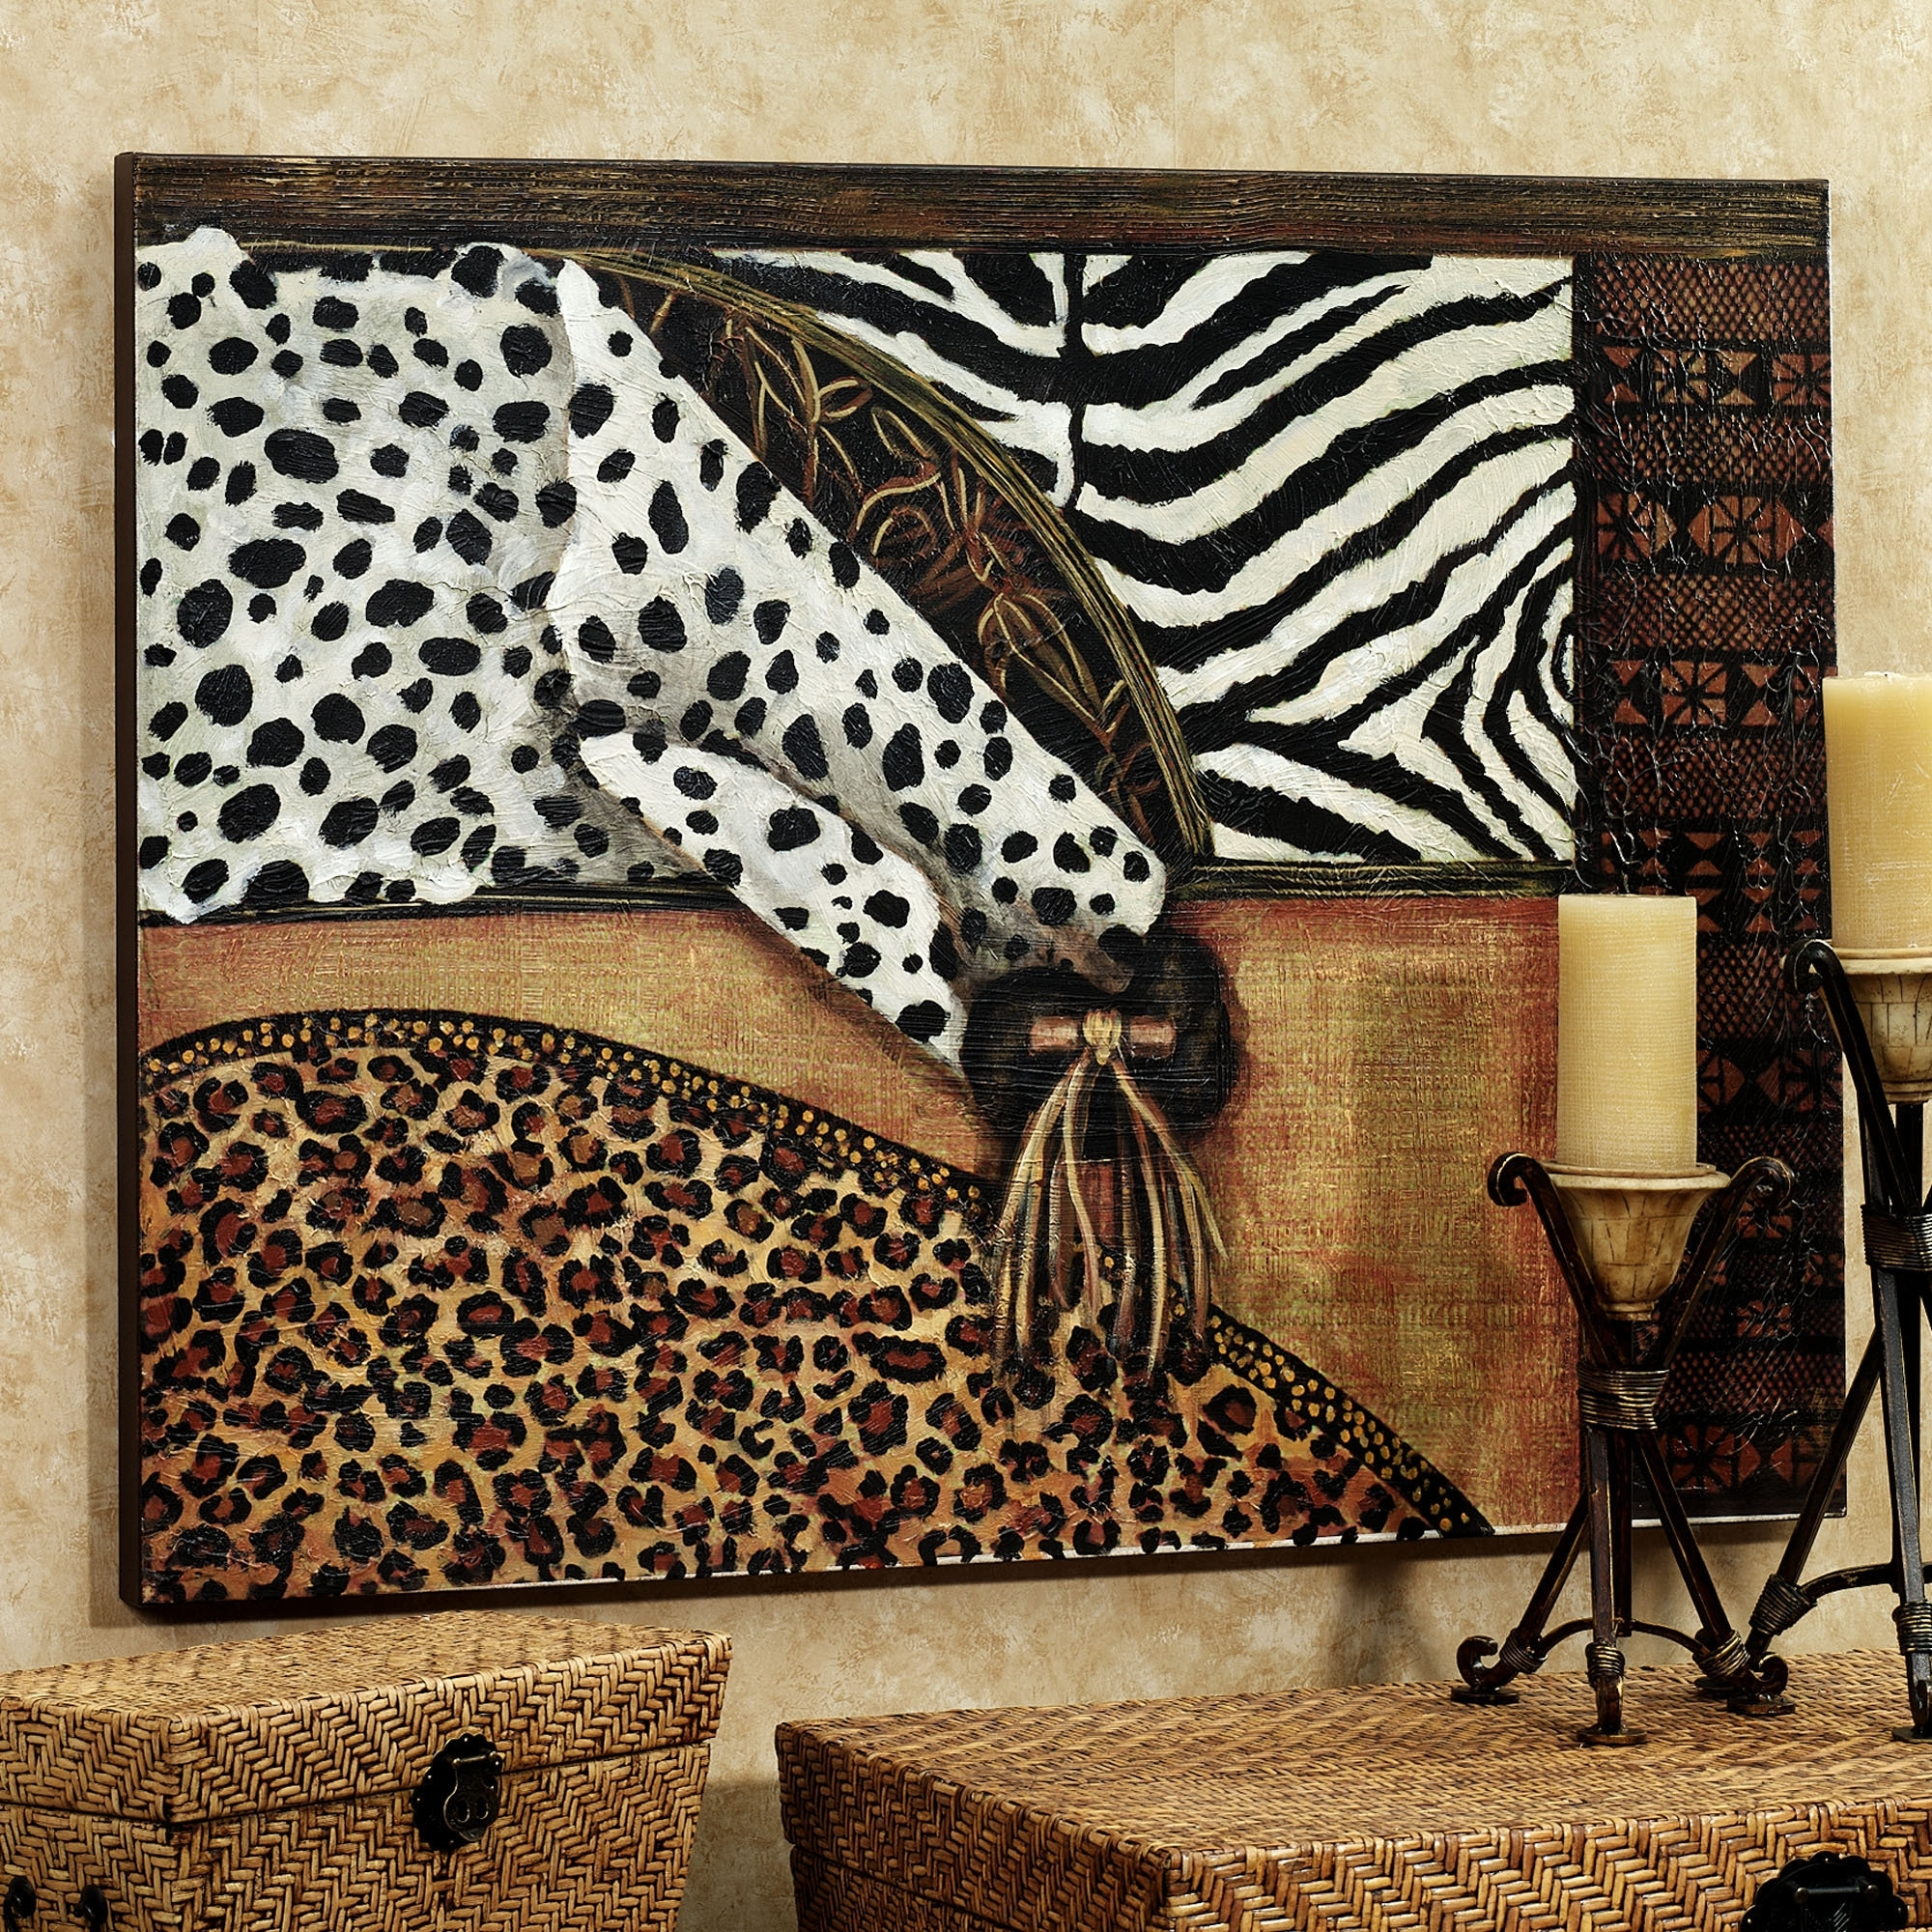 African Wall Decor Superb African Wall Decor – Wall Decoration And Within Current African Wall Art (View 5 of 15)